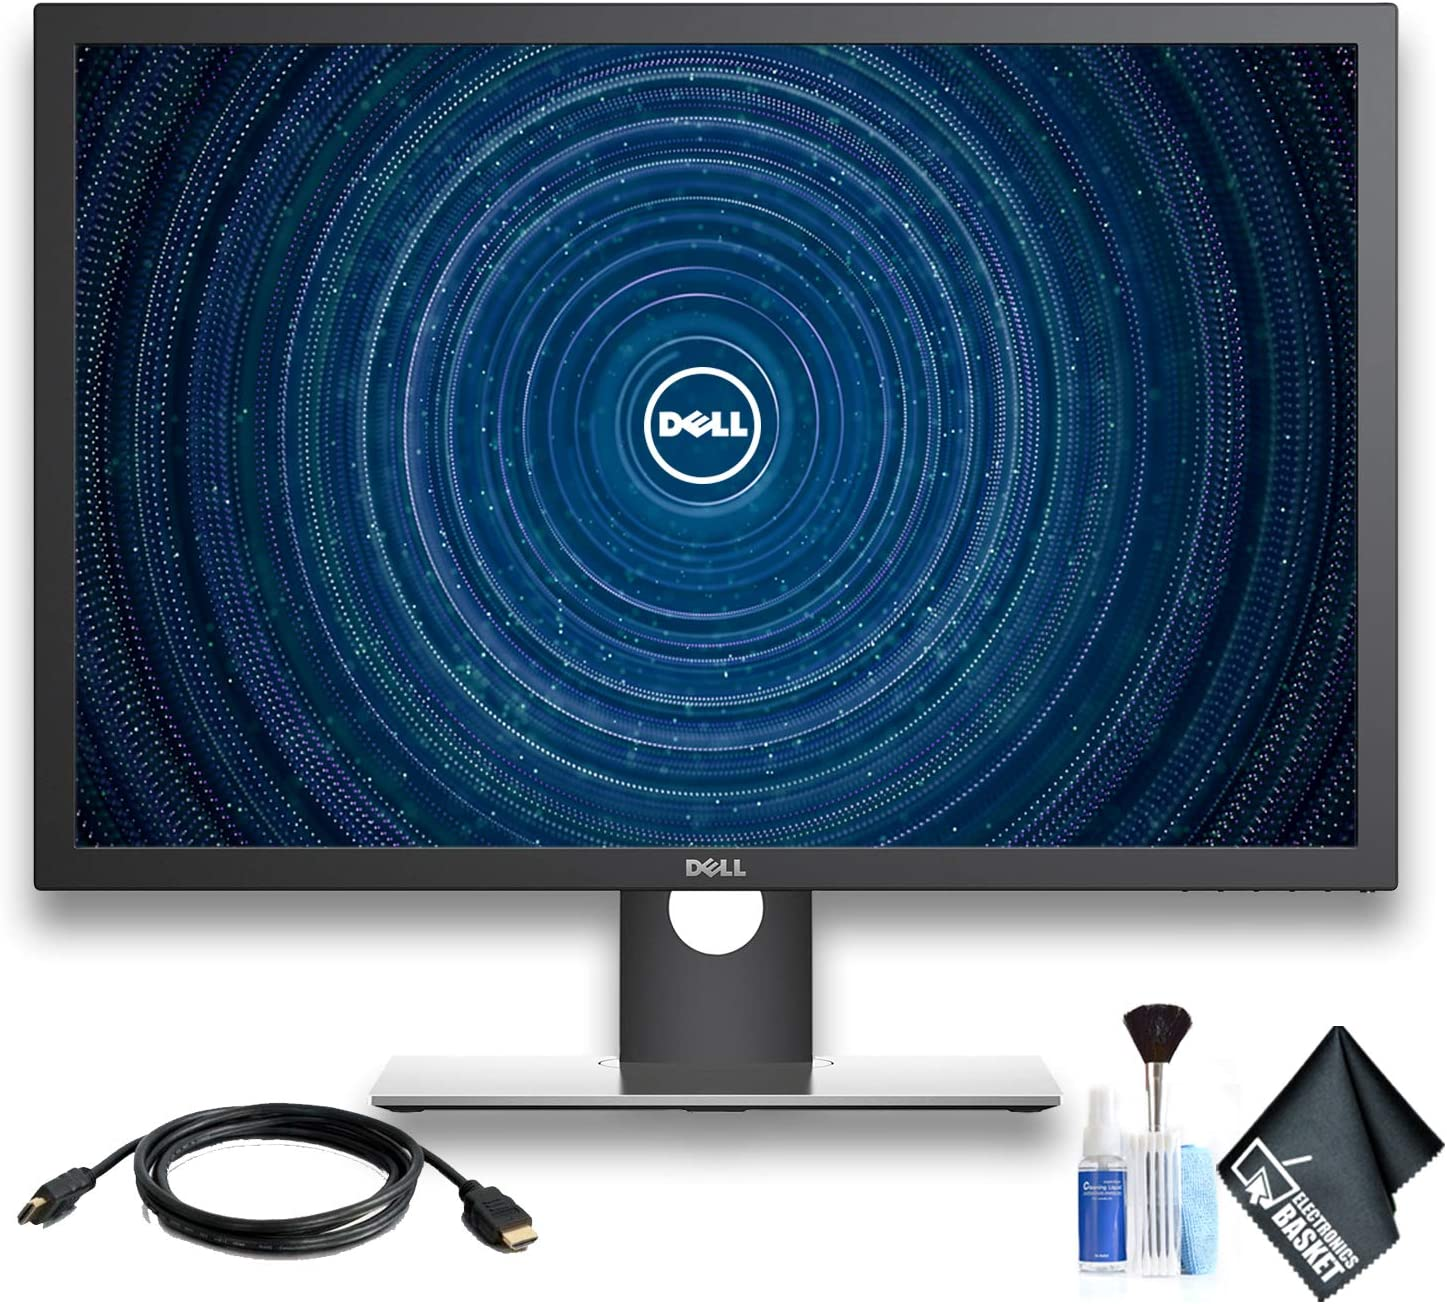 "Dell UP3017 30"" 16:10 IPS Monitor with HDMI Cable"